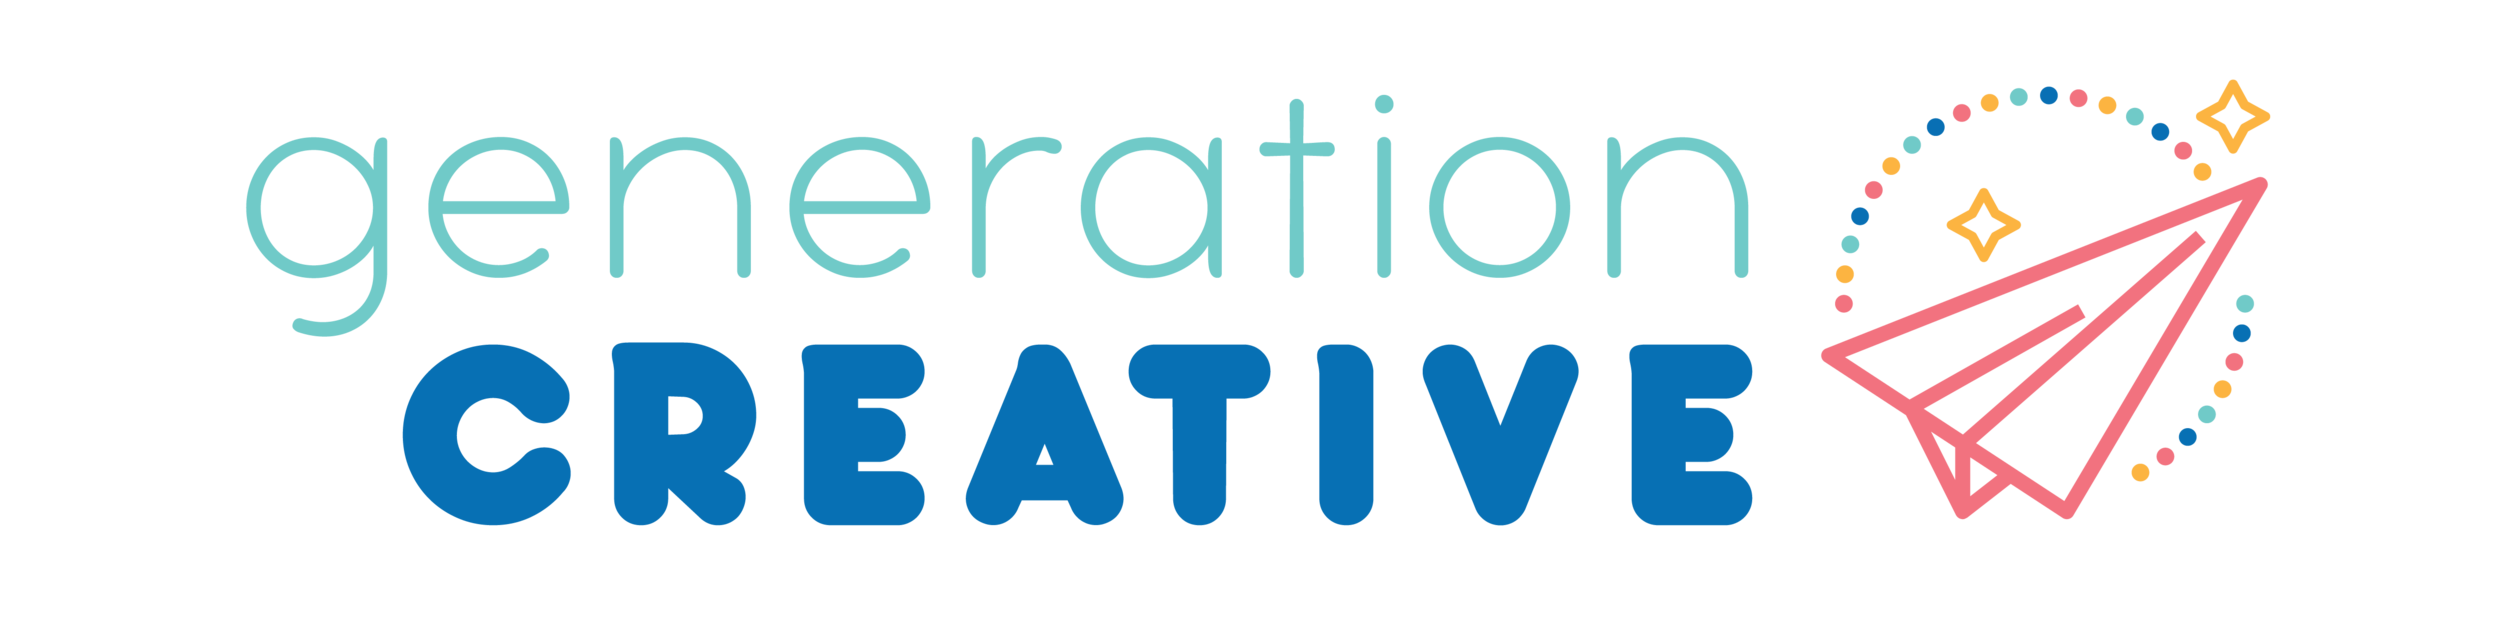 Generation Creative Primary Logo.png